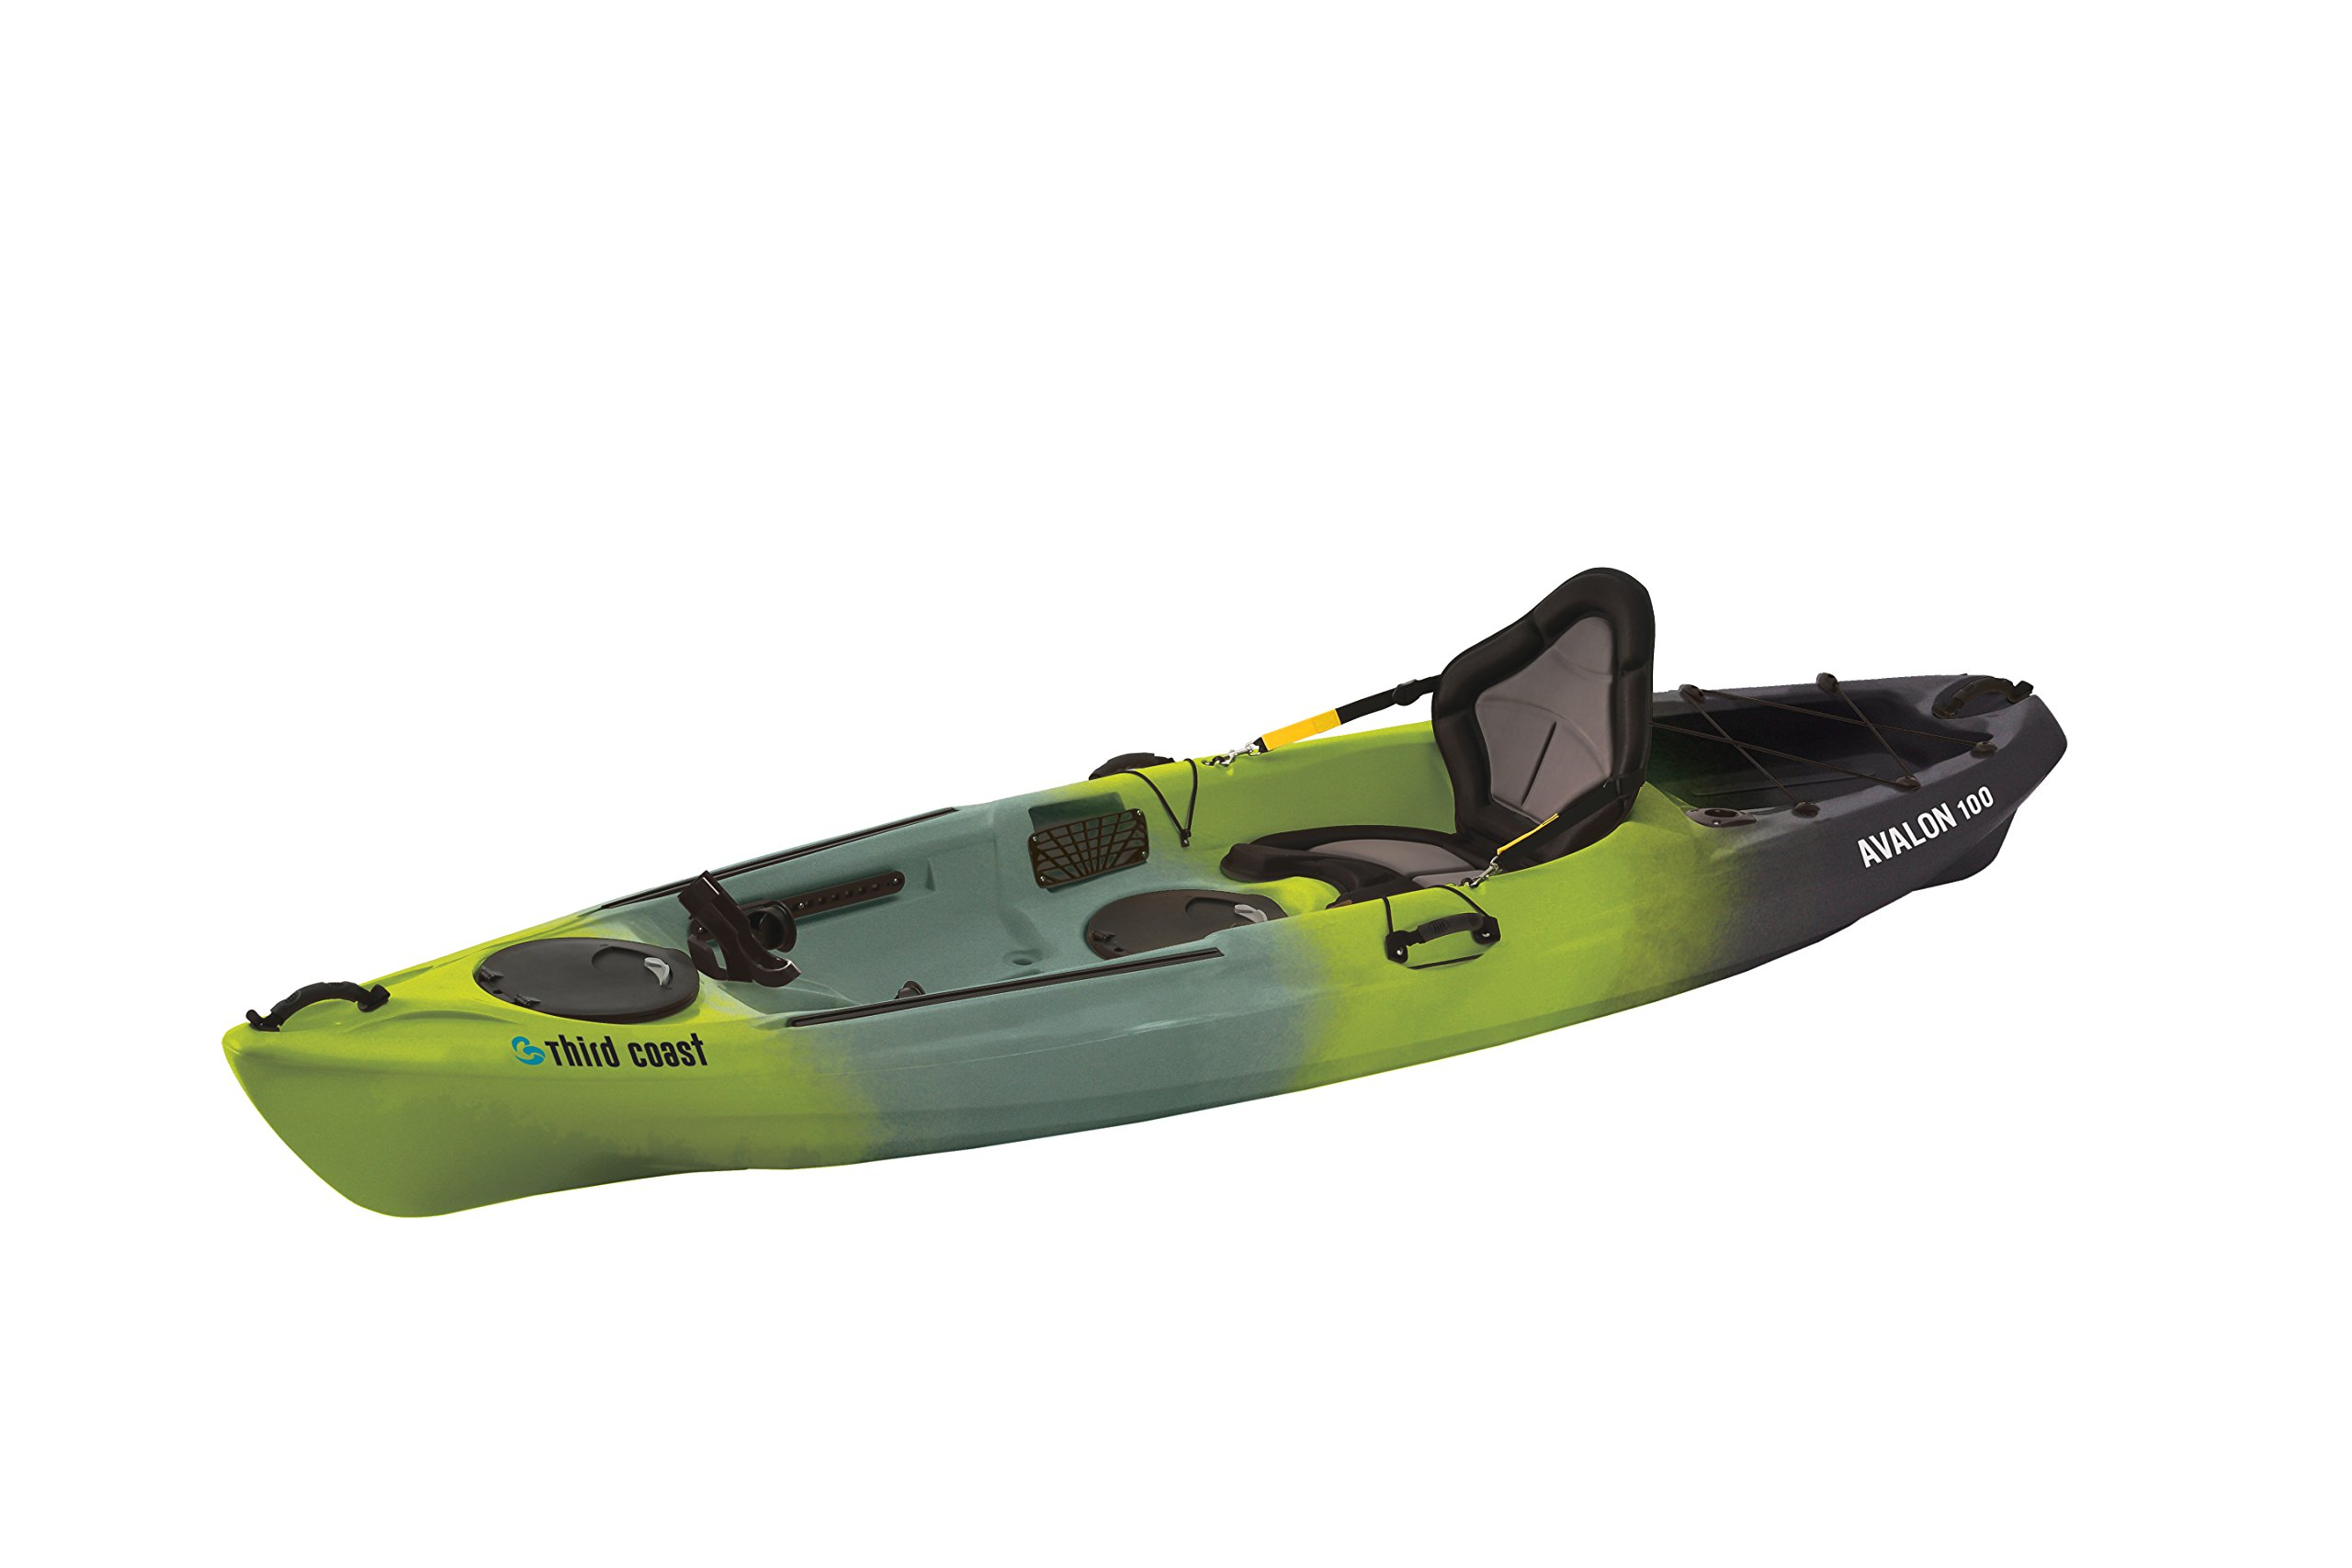 Third Coast Avalon 100 Sit On Angler Kayak (Citron/Black/Gray) by Third Coast